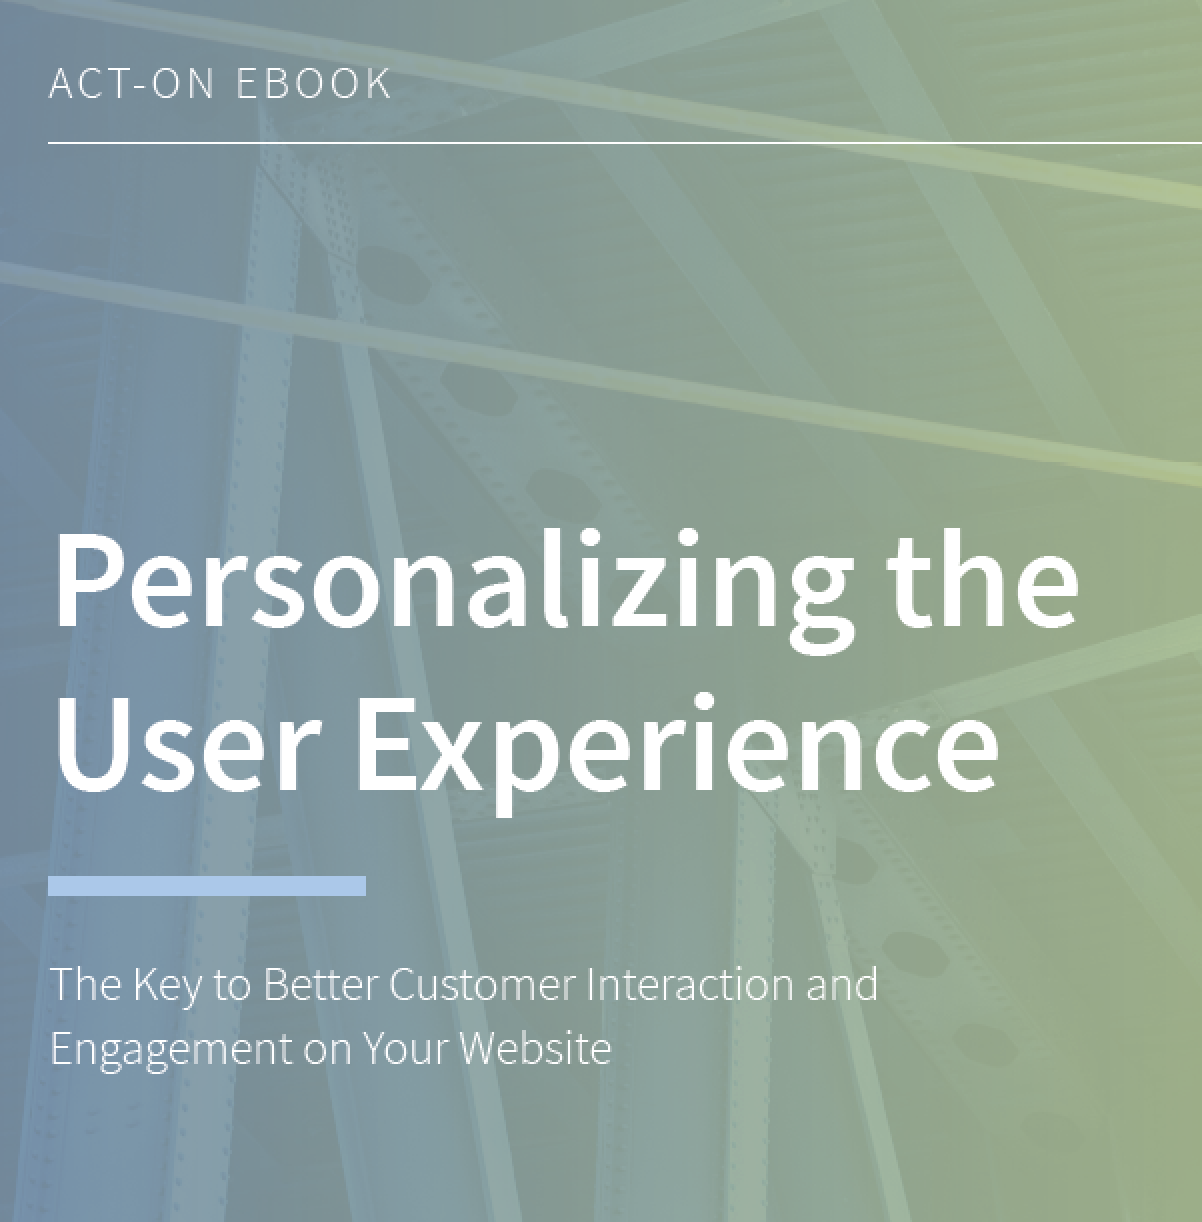 Personalizing the User Experience for Better Customer Interaction and Engagement on Website